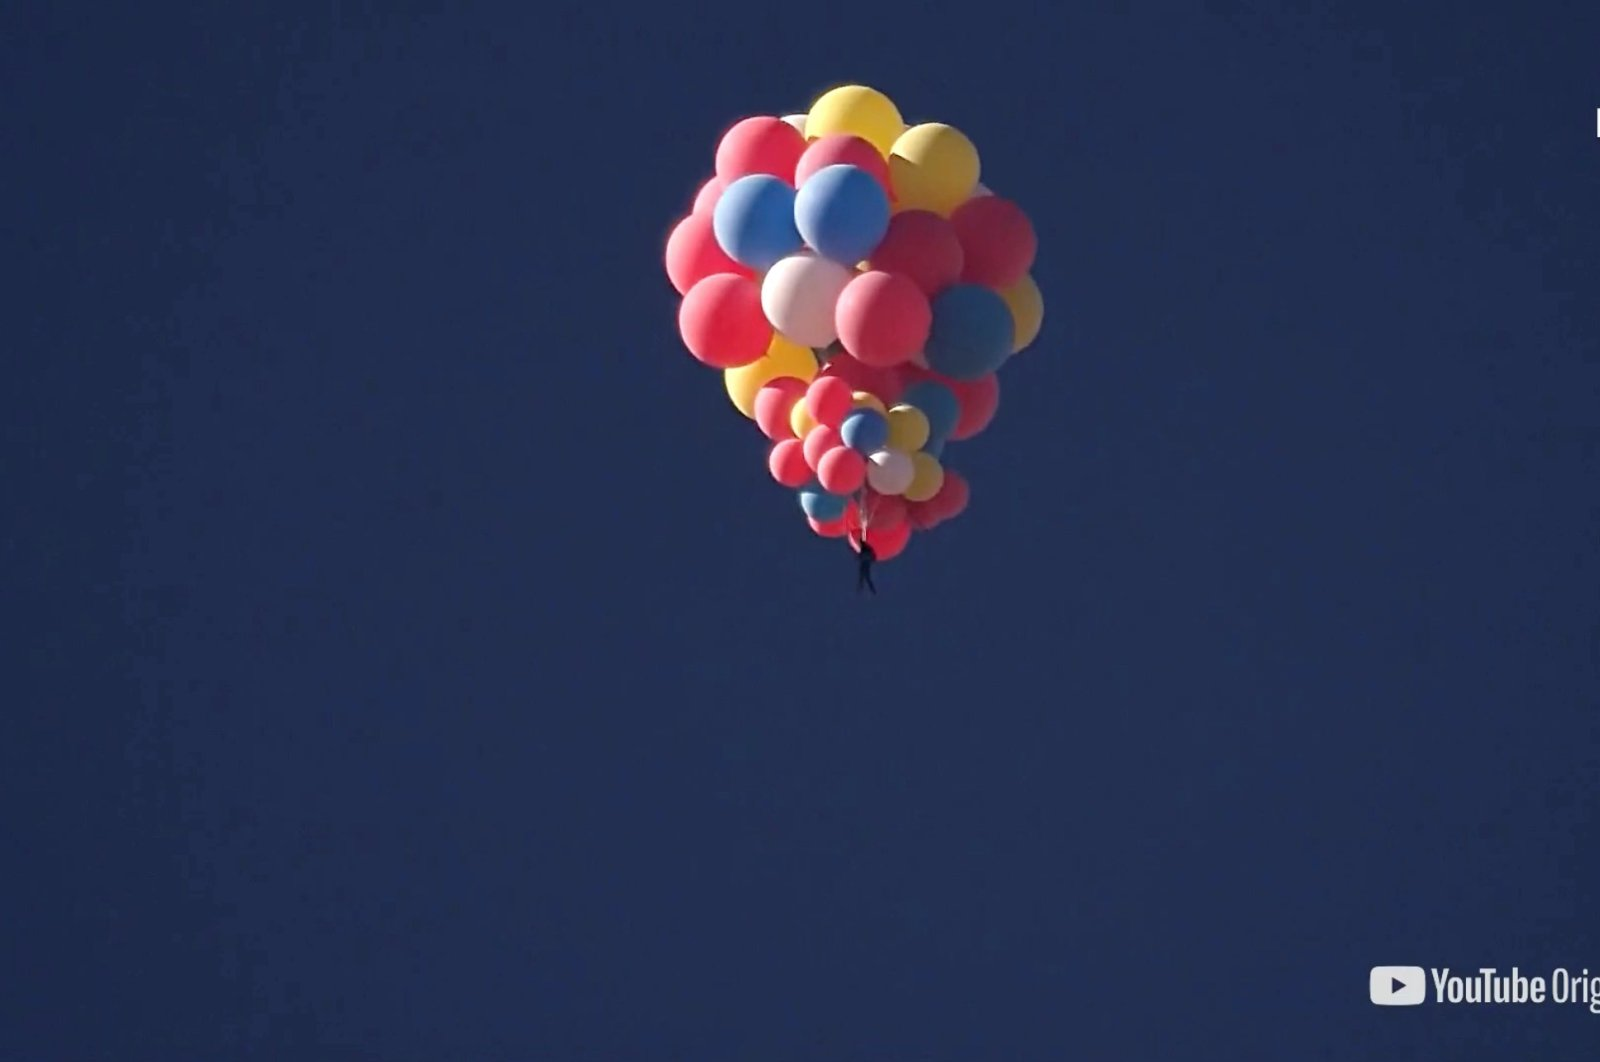 Extreme performer David Blaine hangs with a parachute under a cluster of balloons during a stunt to fly thousands of feet into the air, in a still image from video taken over Page, Arizona, U.S., Sept. 2, 2020. (David Blaine handout via Reuters)